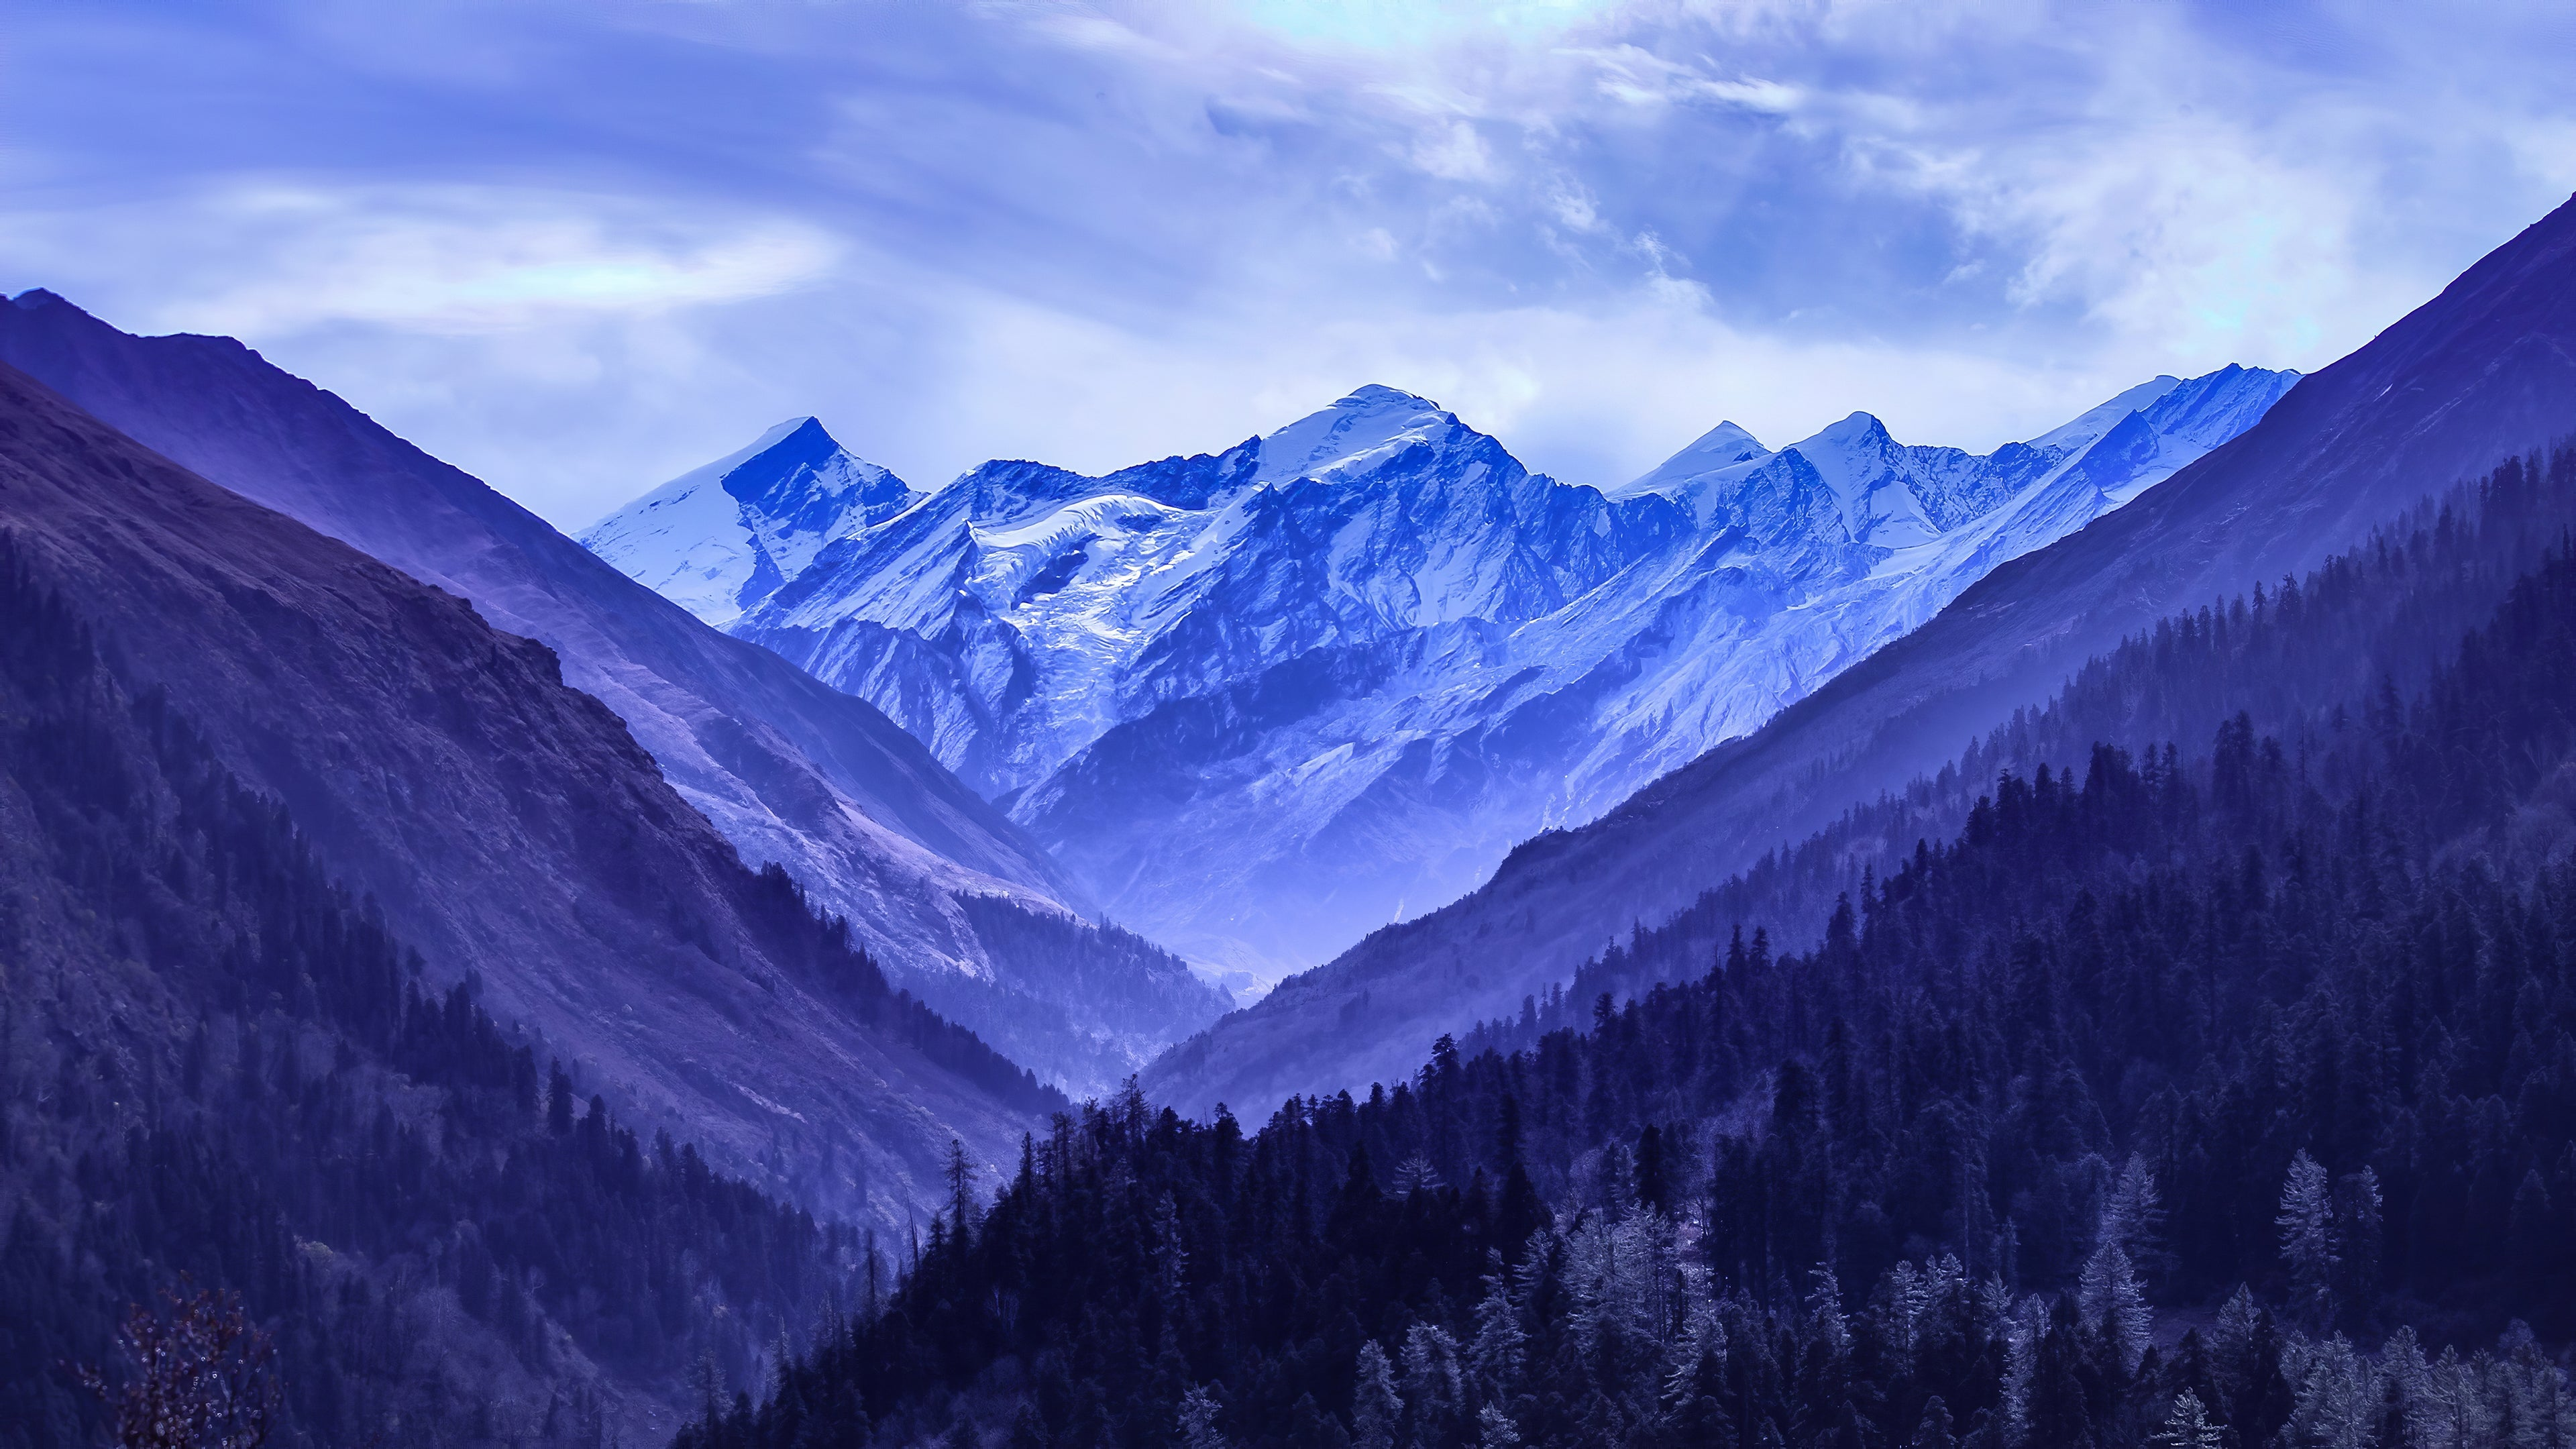 Mountains 4k Wallpapers For Your Desktop Or Mobile Screen